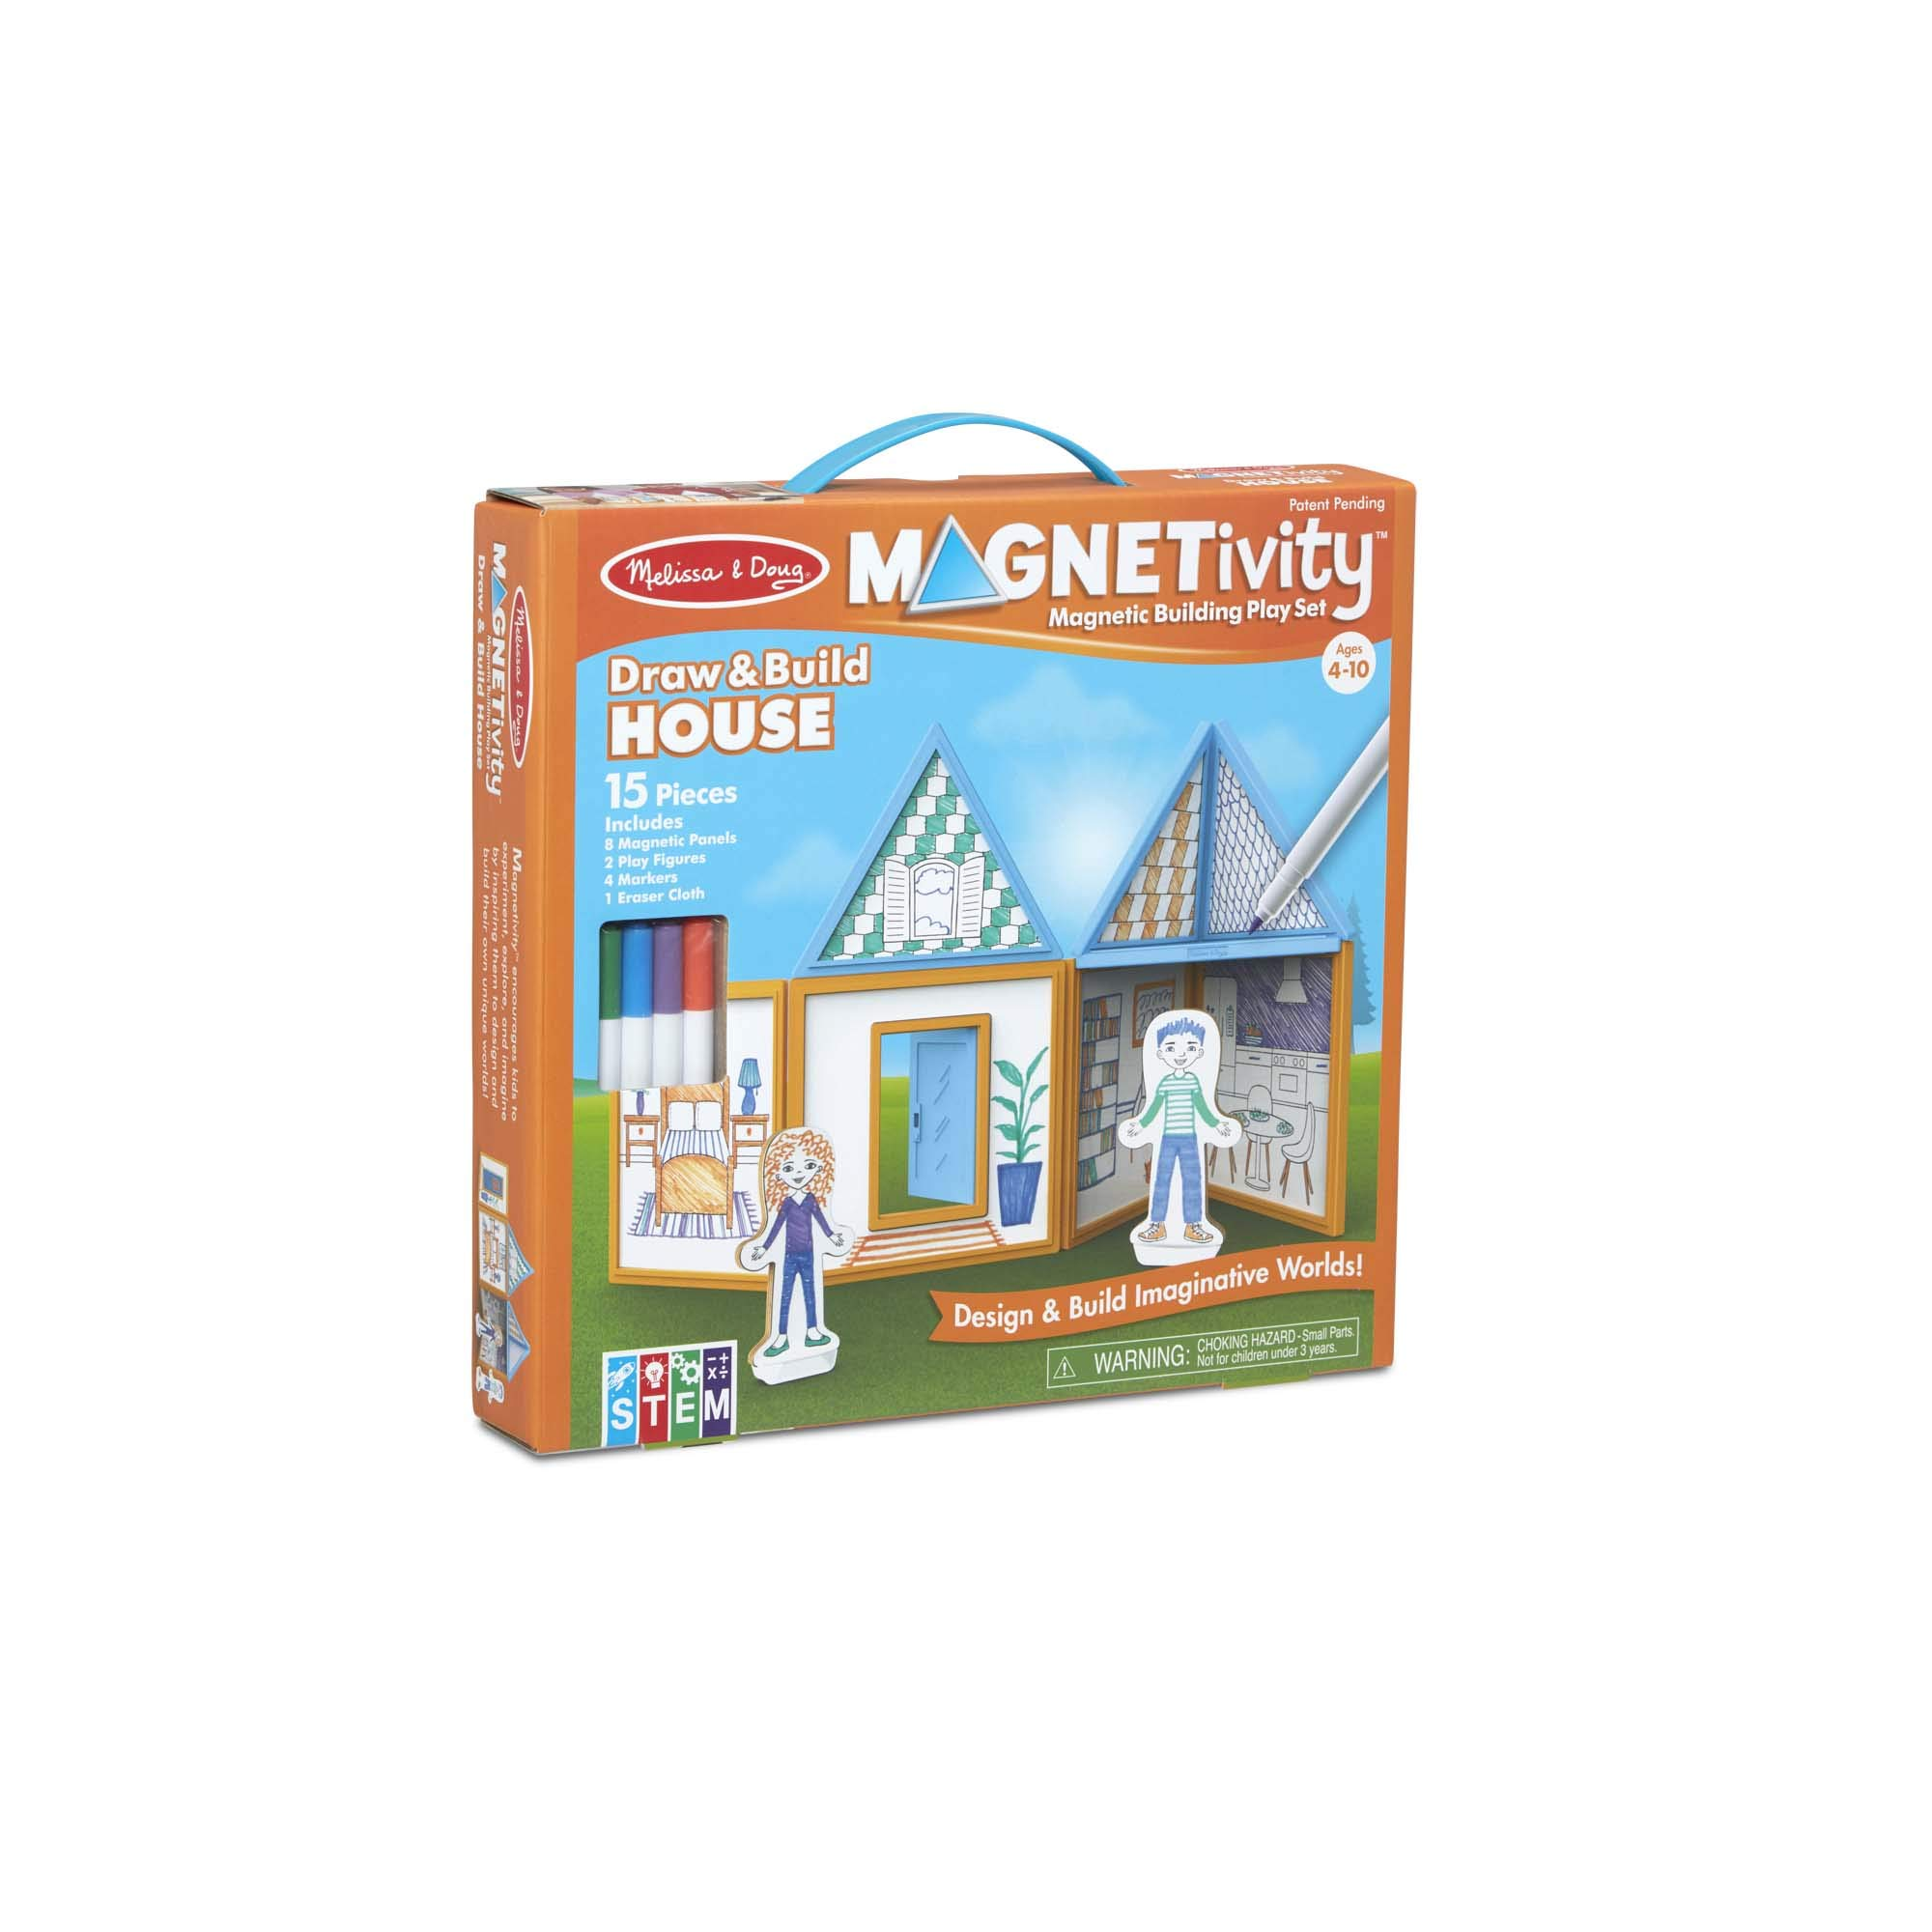 Melissa & Doug 15-Piece MAGNETIVITY Magnetic Building Play Set - Draw & Build House (8 Panels, 4 Dry-Erase Markers)